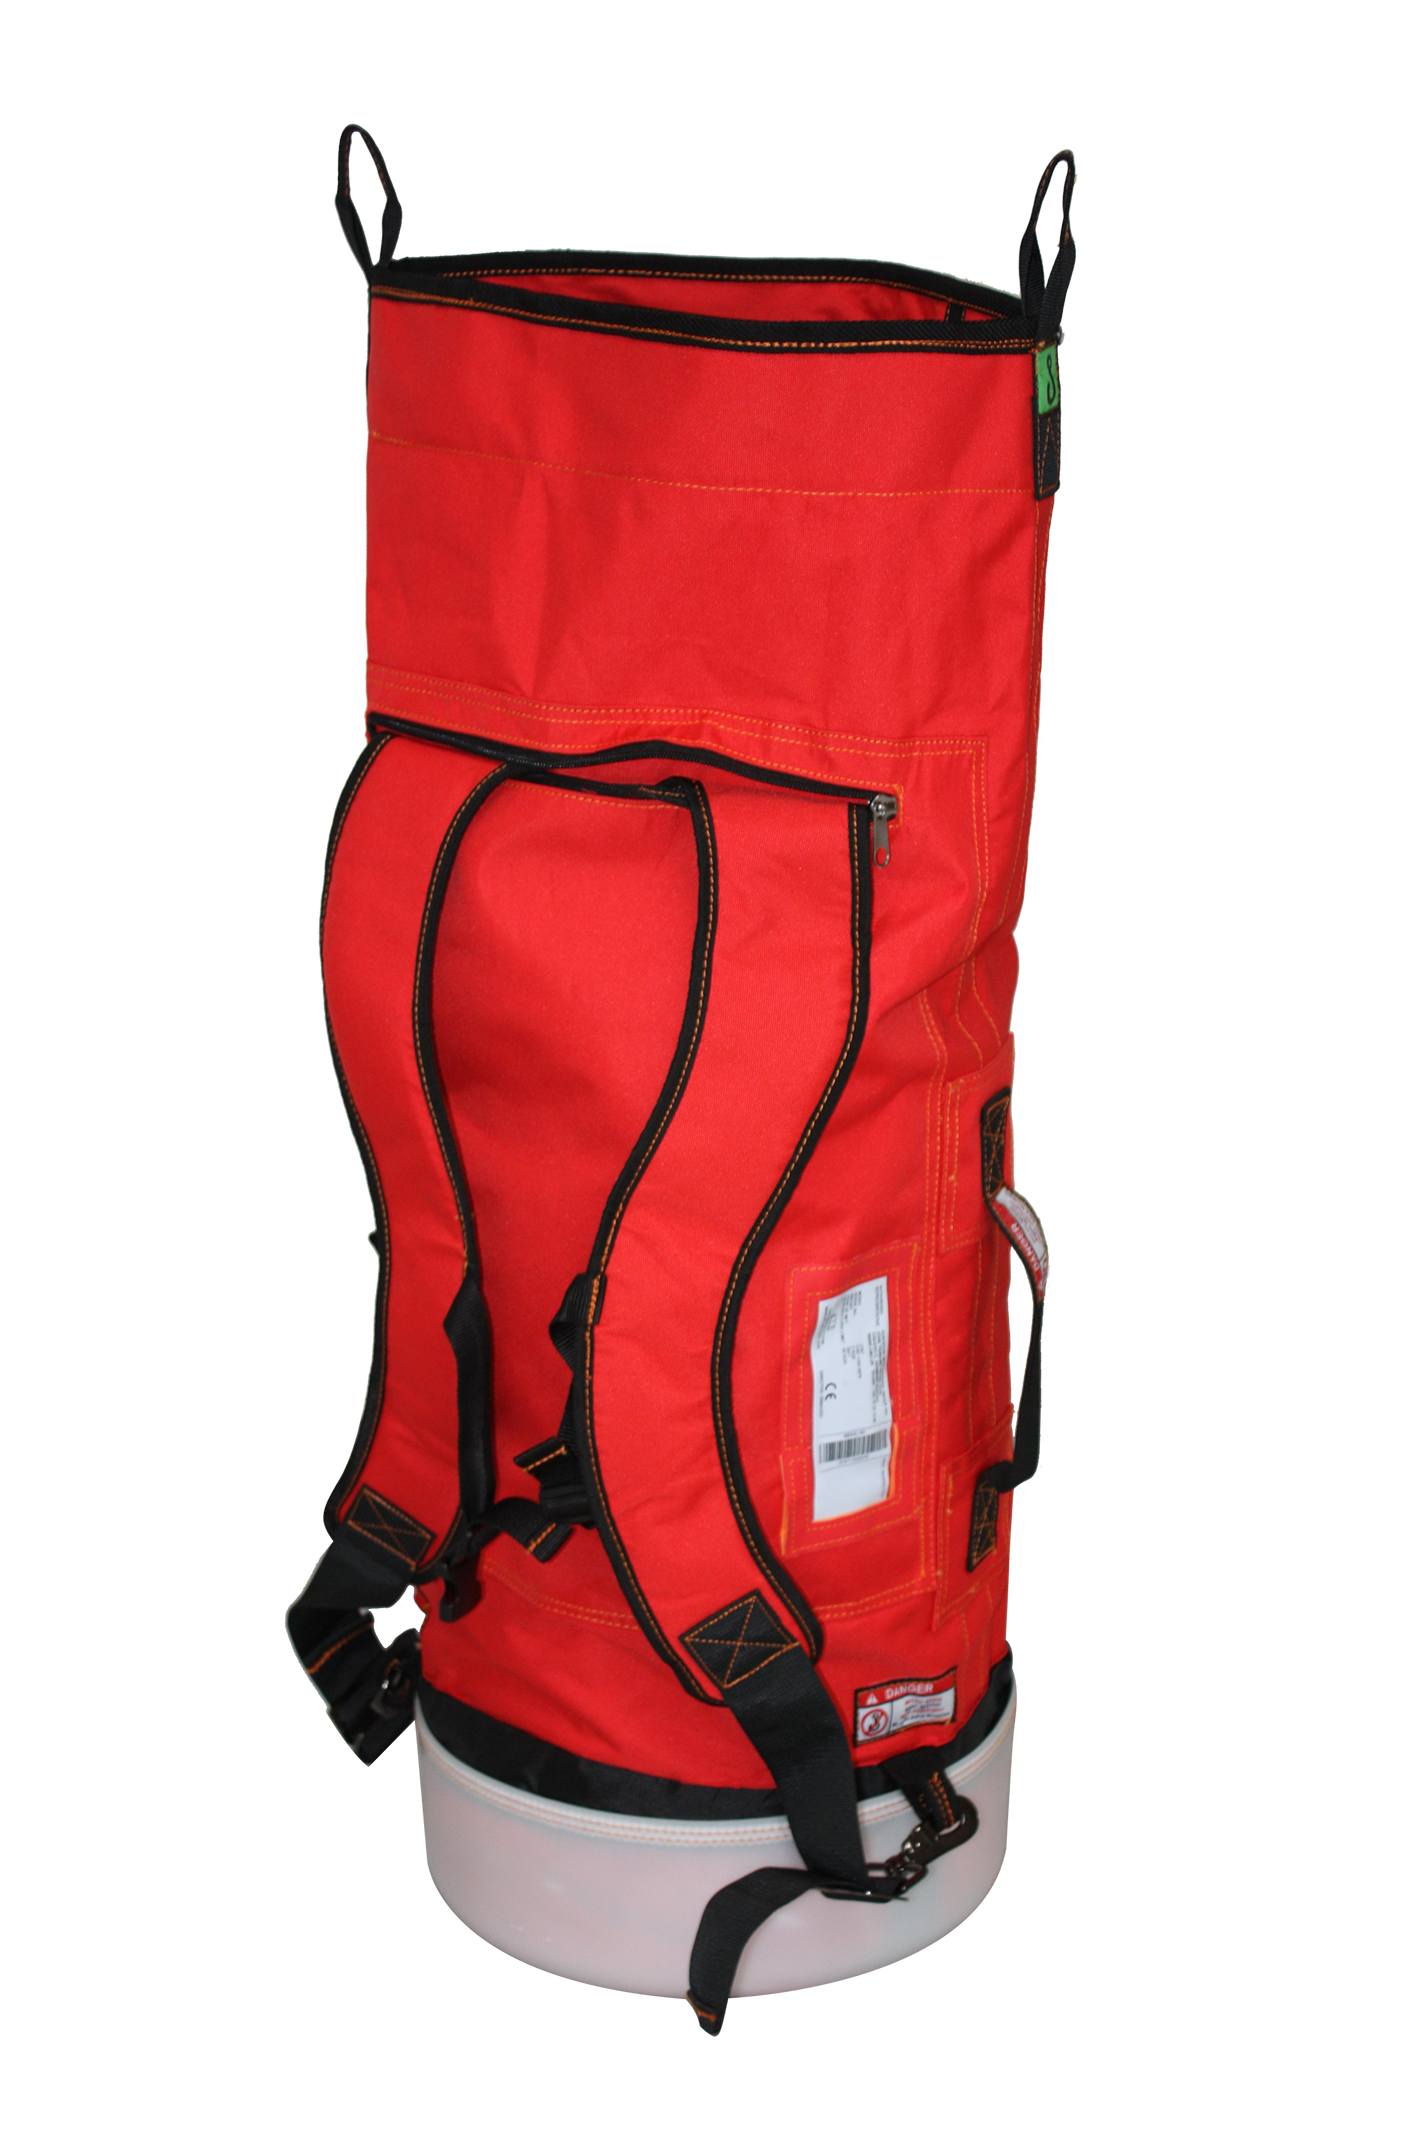 EMG MODEL 2787 Lifting Bag/Ruck Sack, 50kg